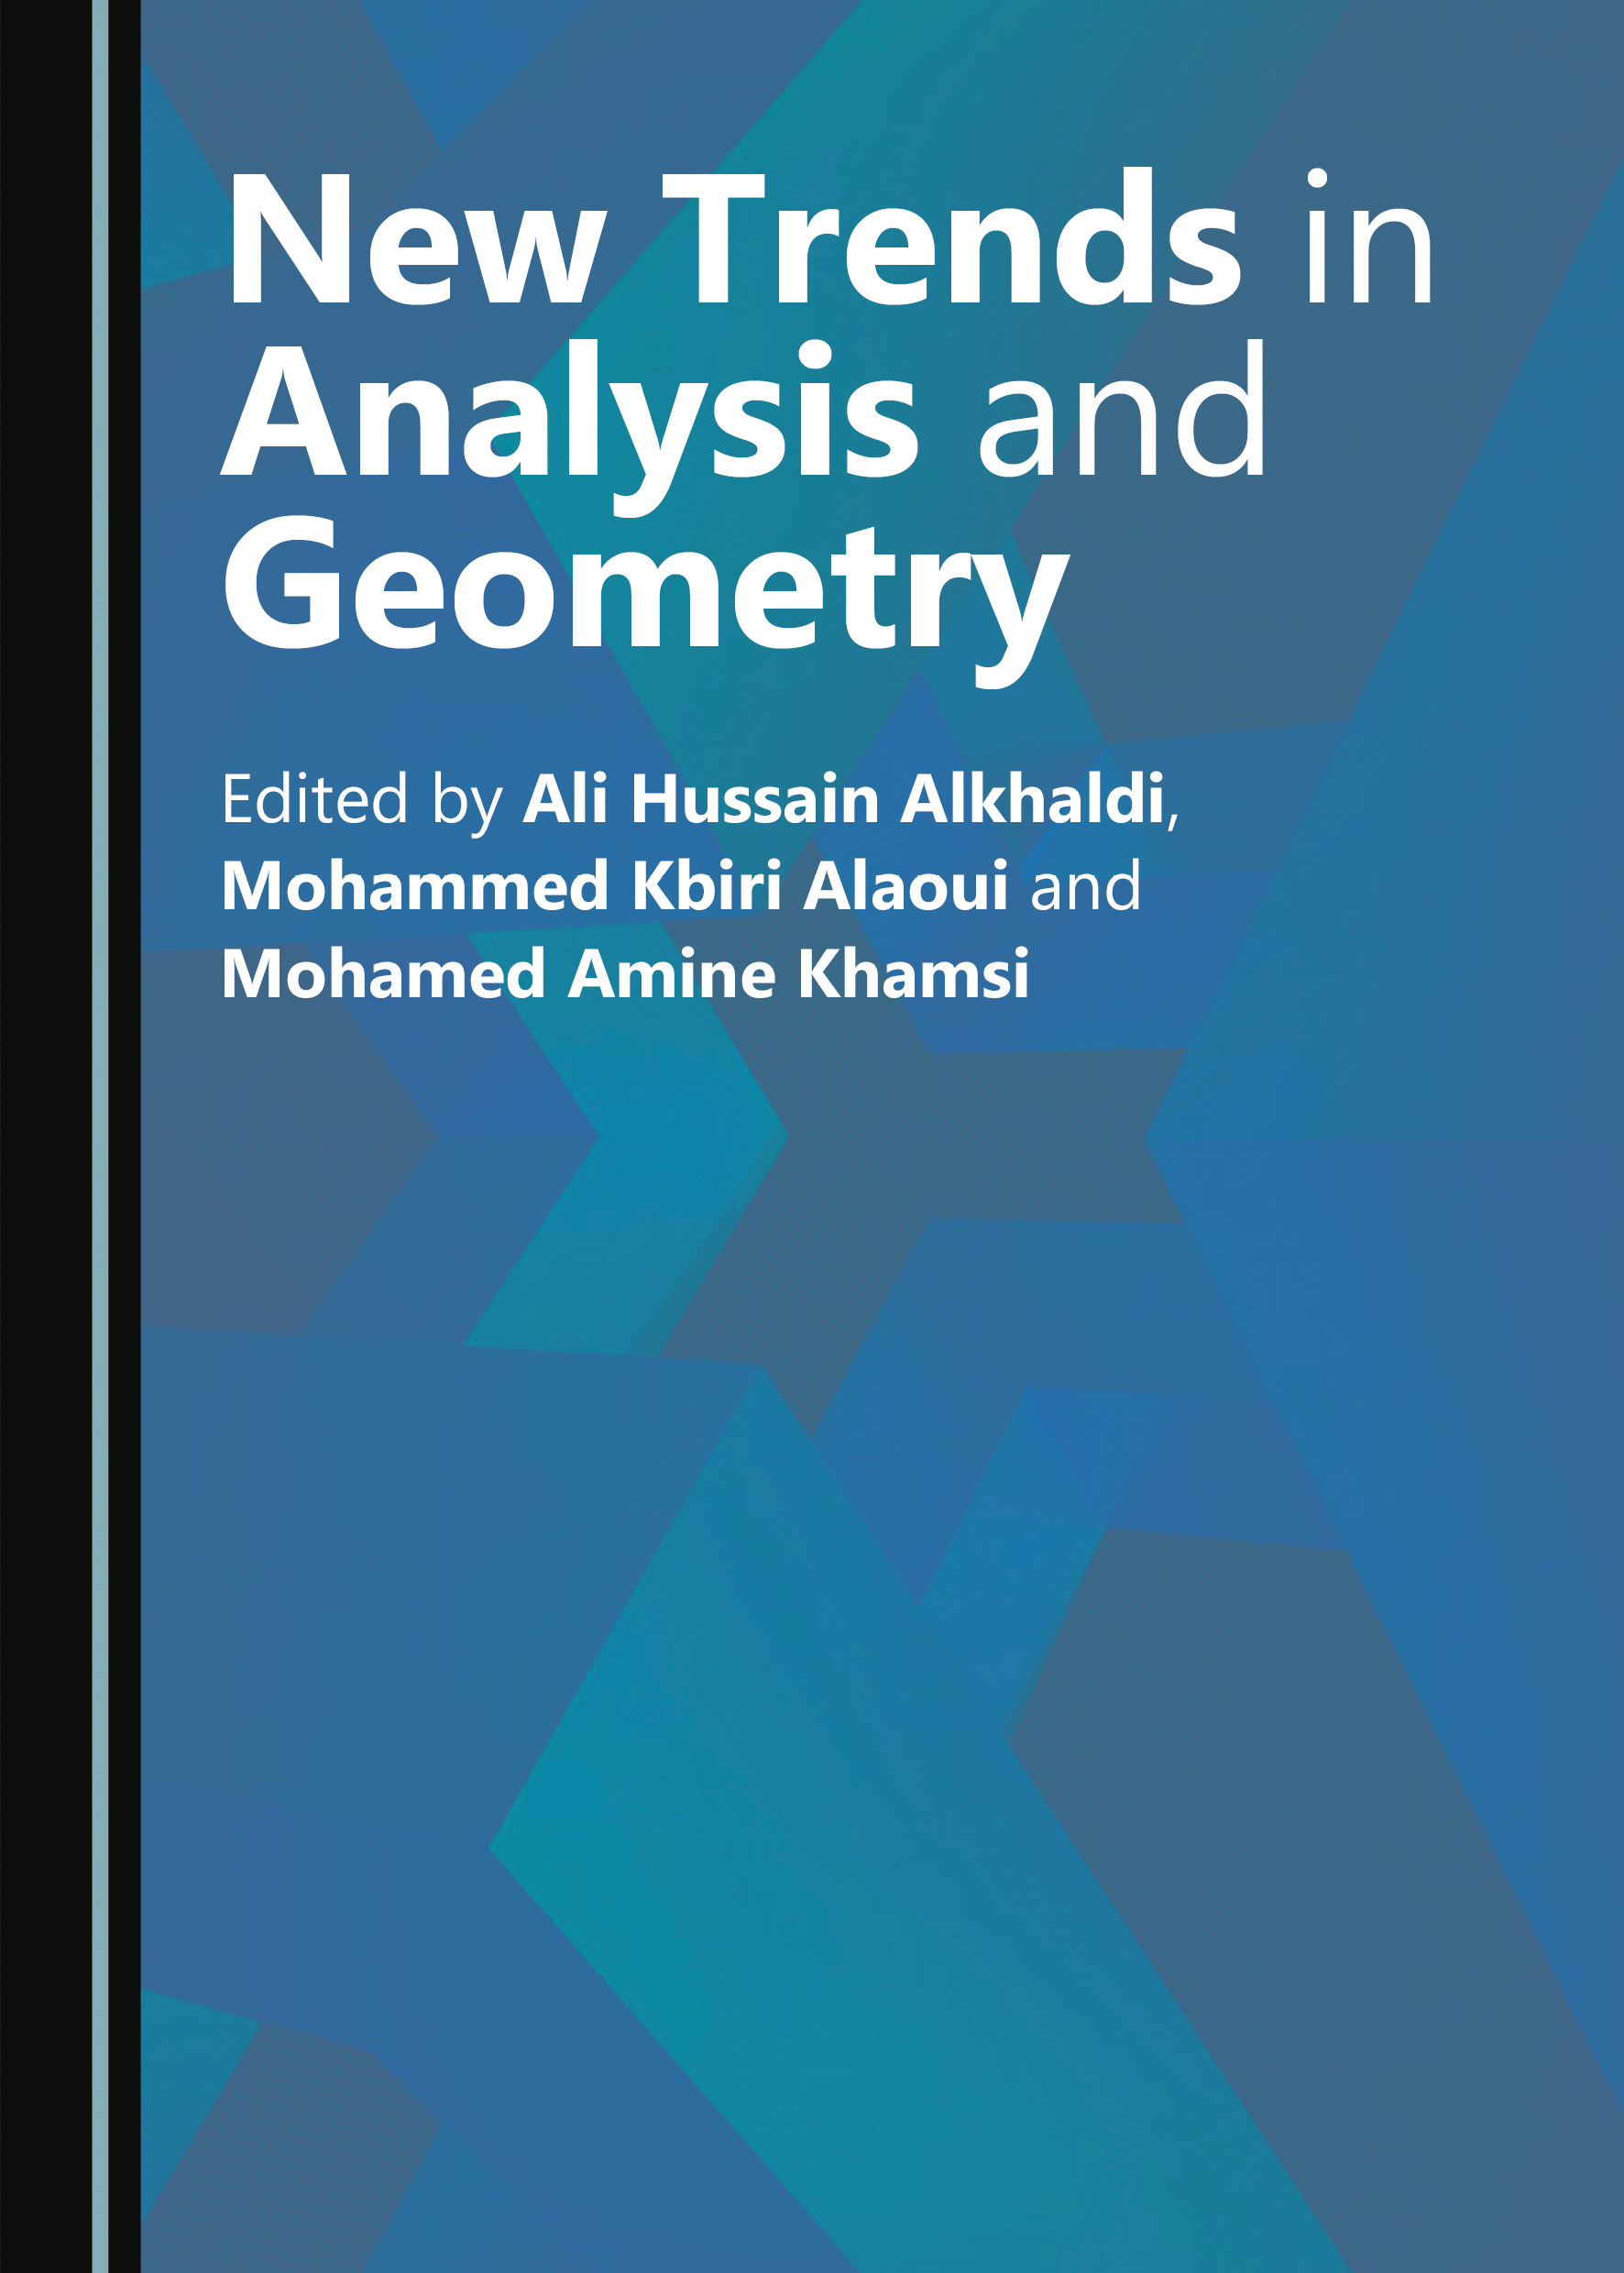 New Trends in Analysis and Geometry